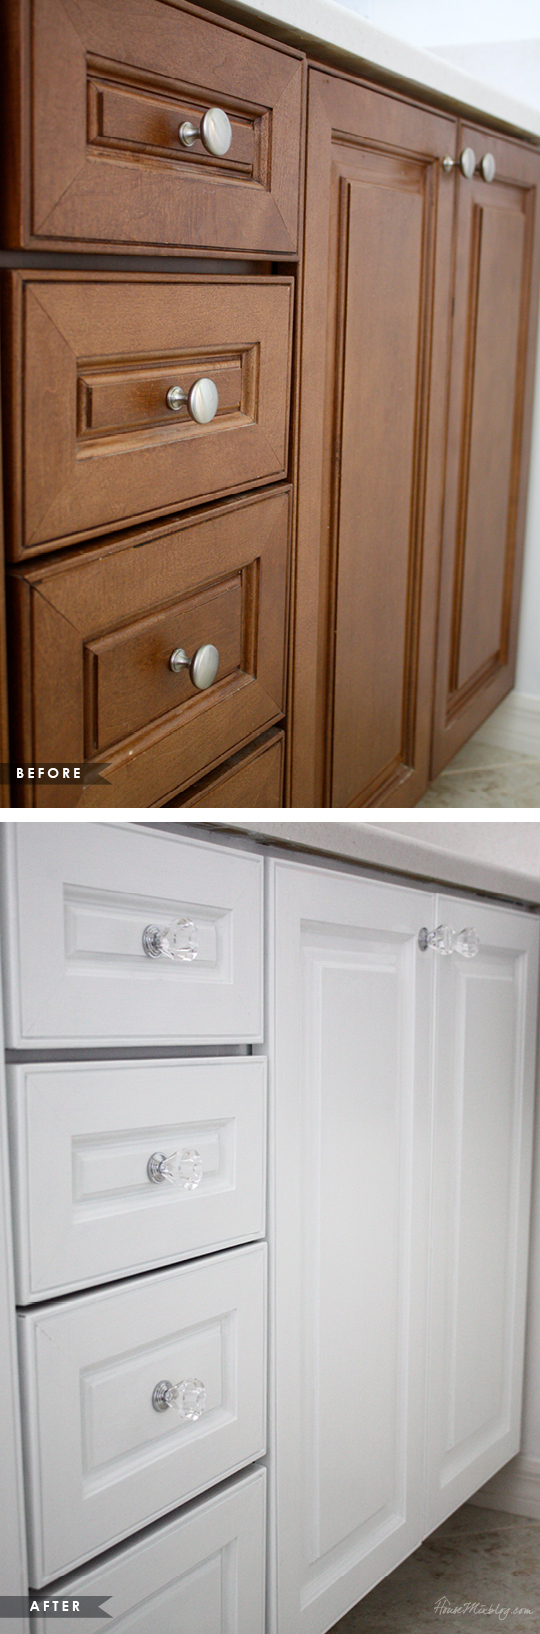 Delicieux How To Paint Cabinets Without Removing Doors Using One Can   Before And  After